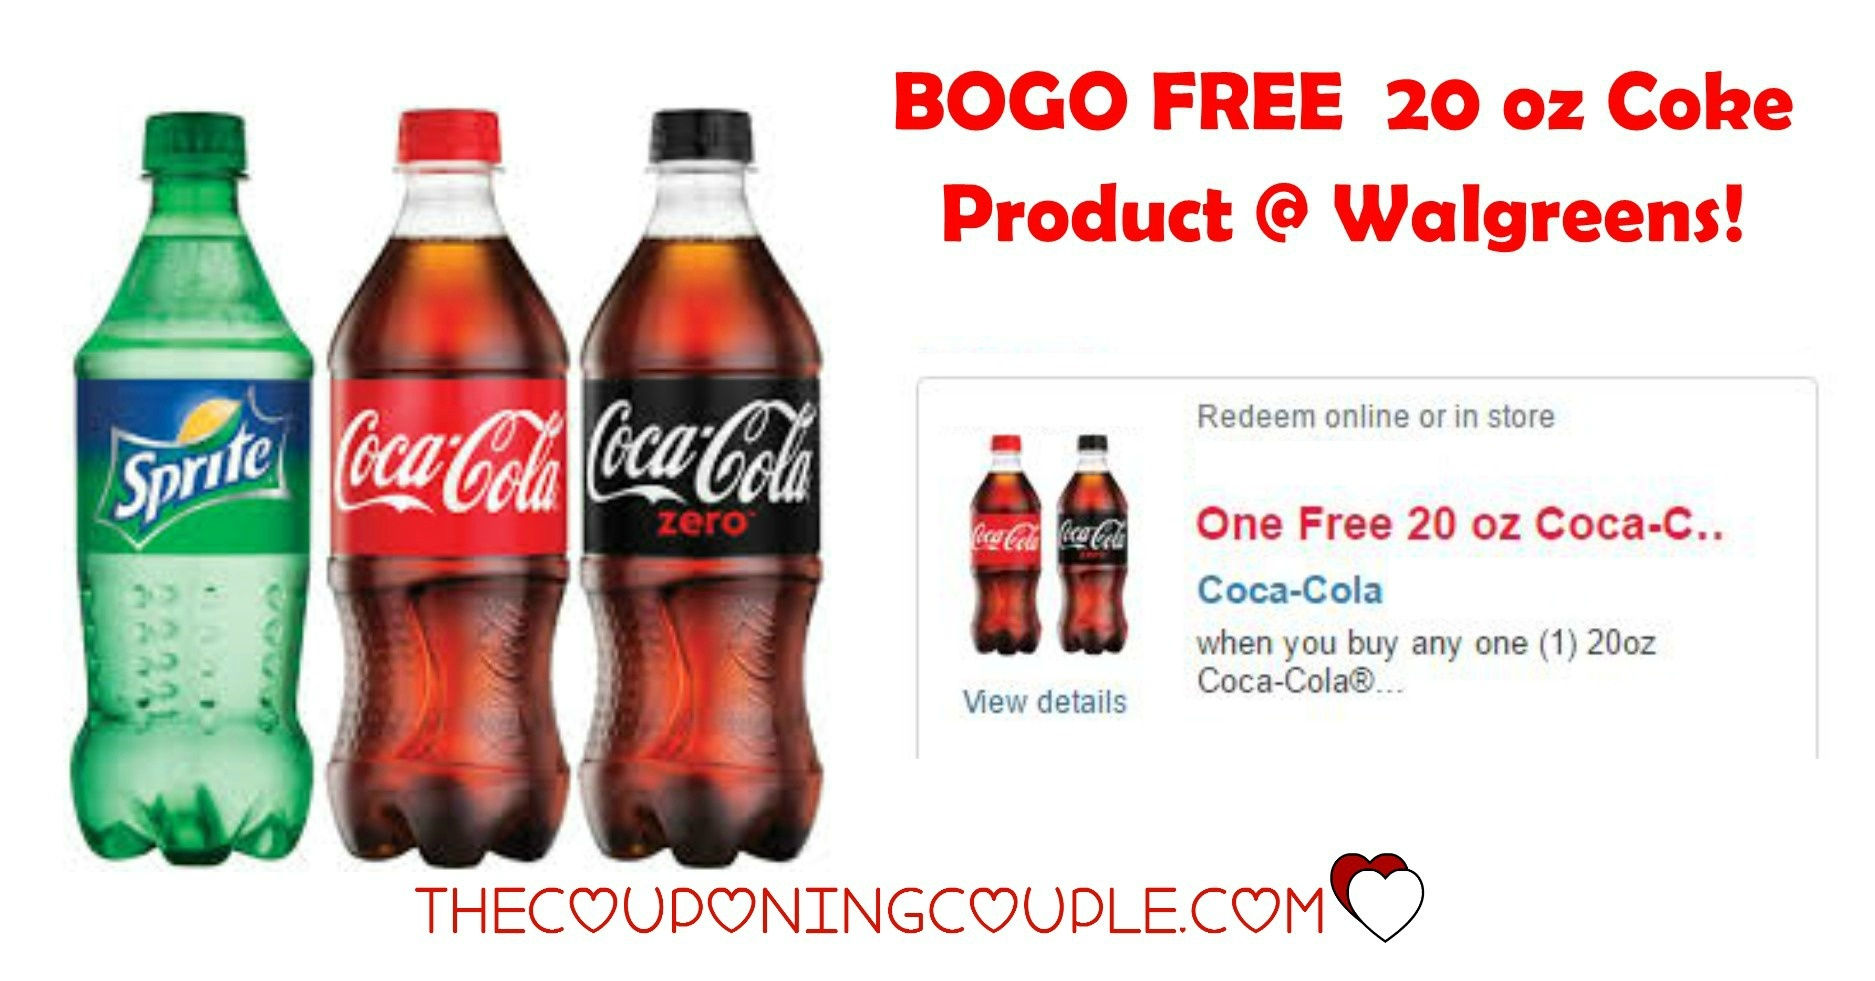 Bogo Free 20 Oz Coke Ecoupon @ Walgreens! Through 6/28! - Free Printable Coupons For Coca Cola Products